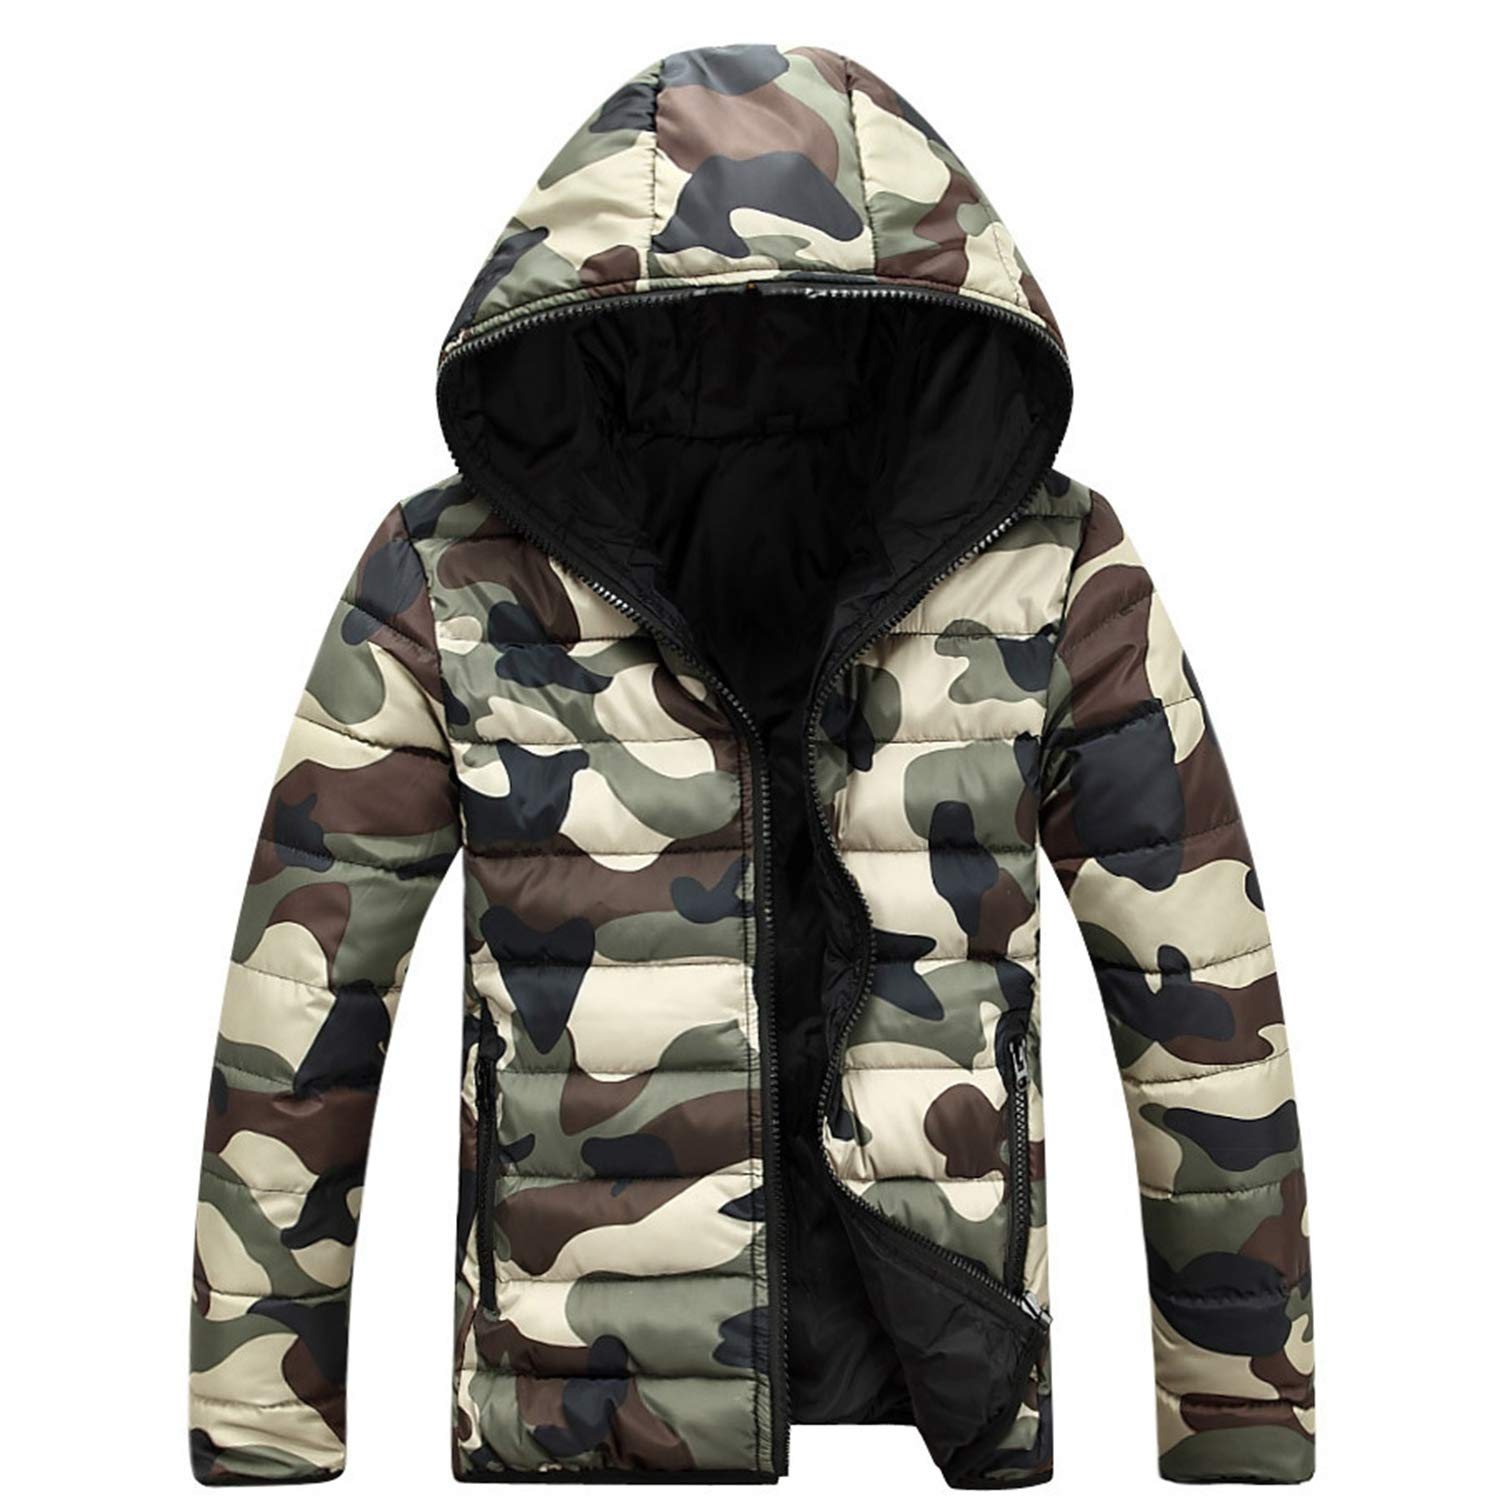 47a65a2cfd40 Frozac Camouflage Winter Down Jacket Coats Men New Mens Doudoune Homme  Hiver Marque with Hood at Amazon Men s Clothing store